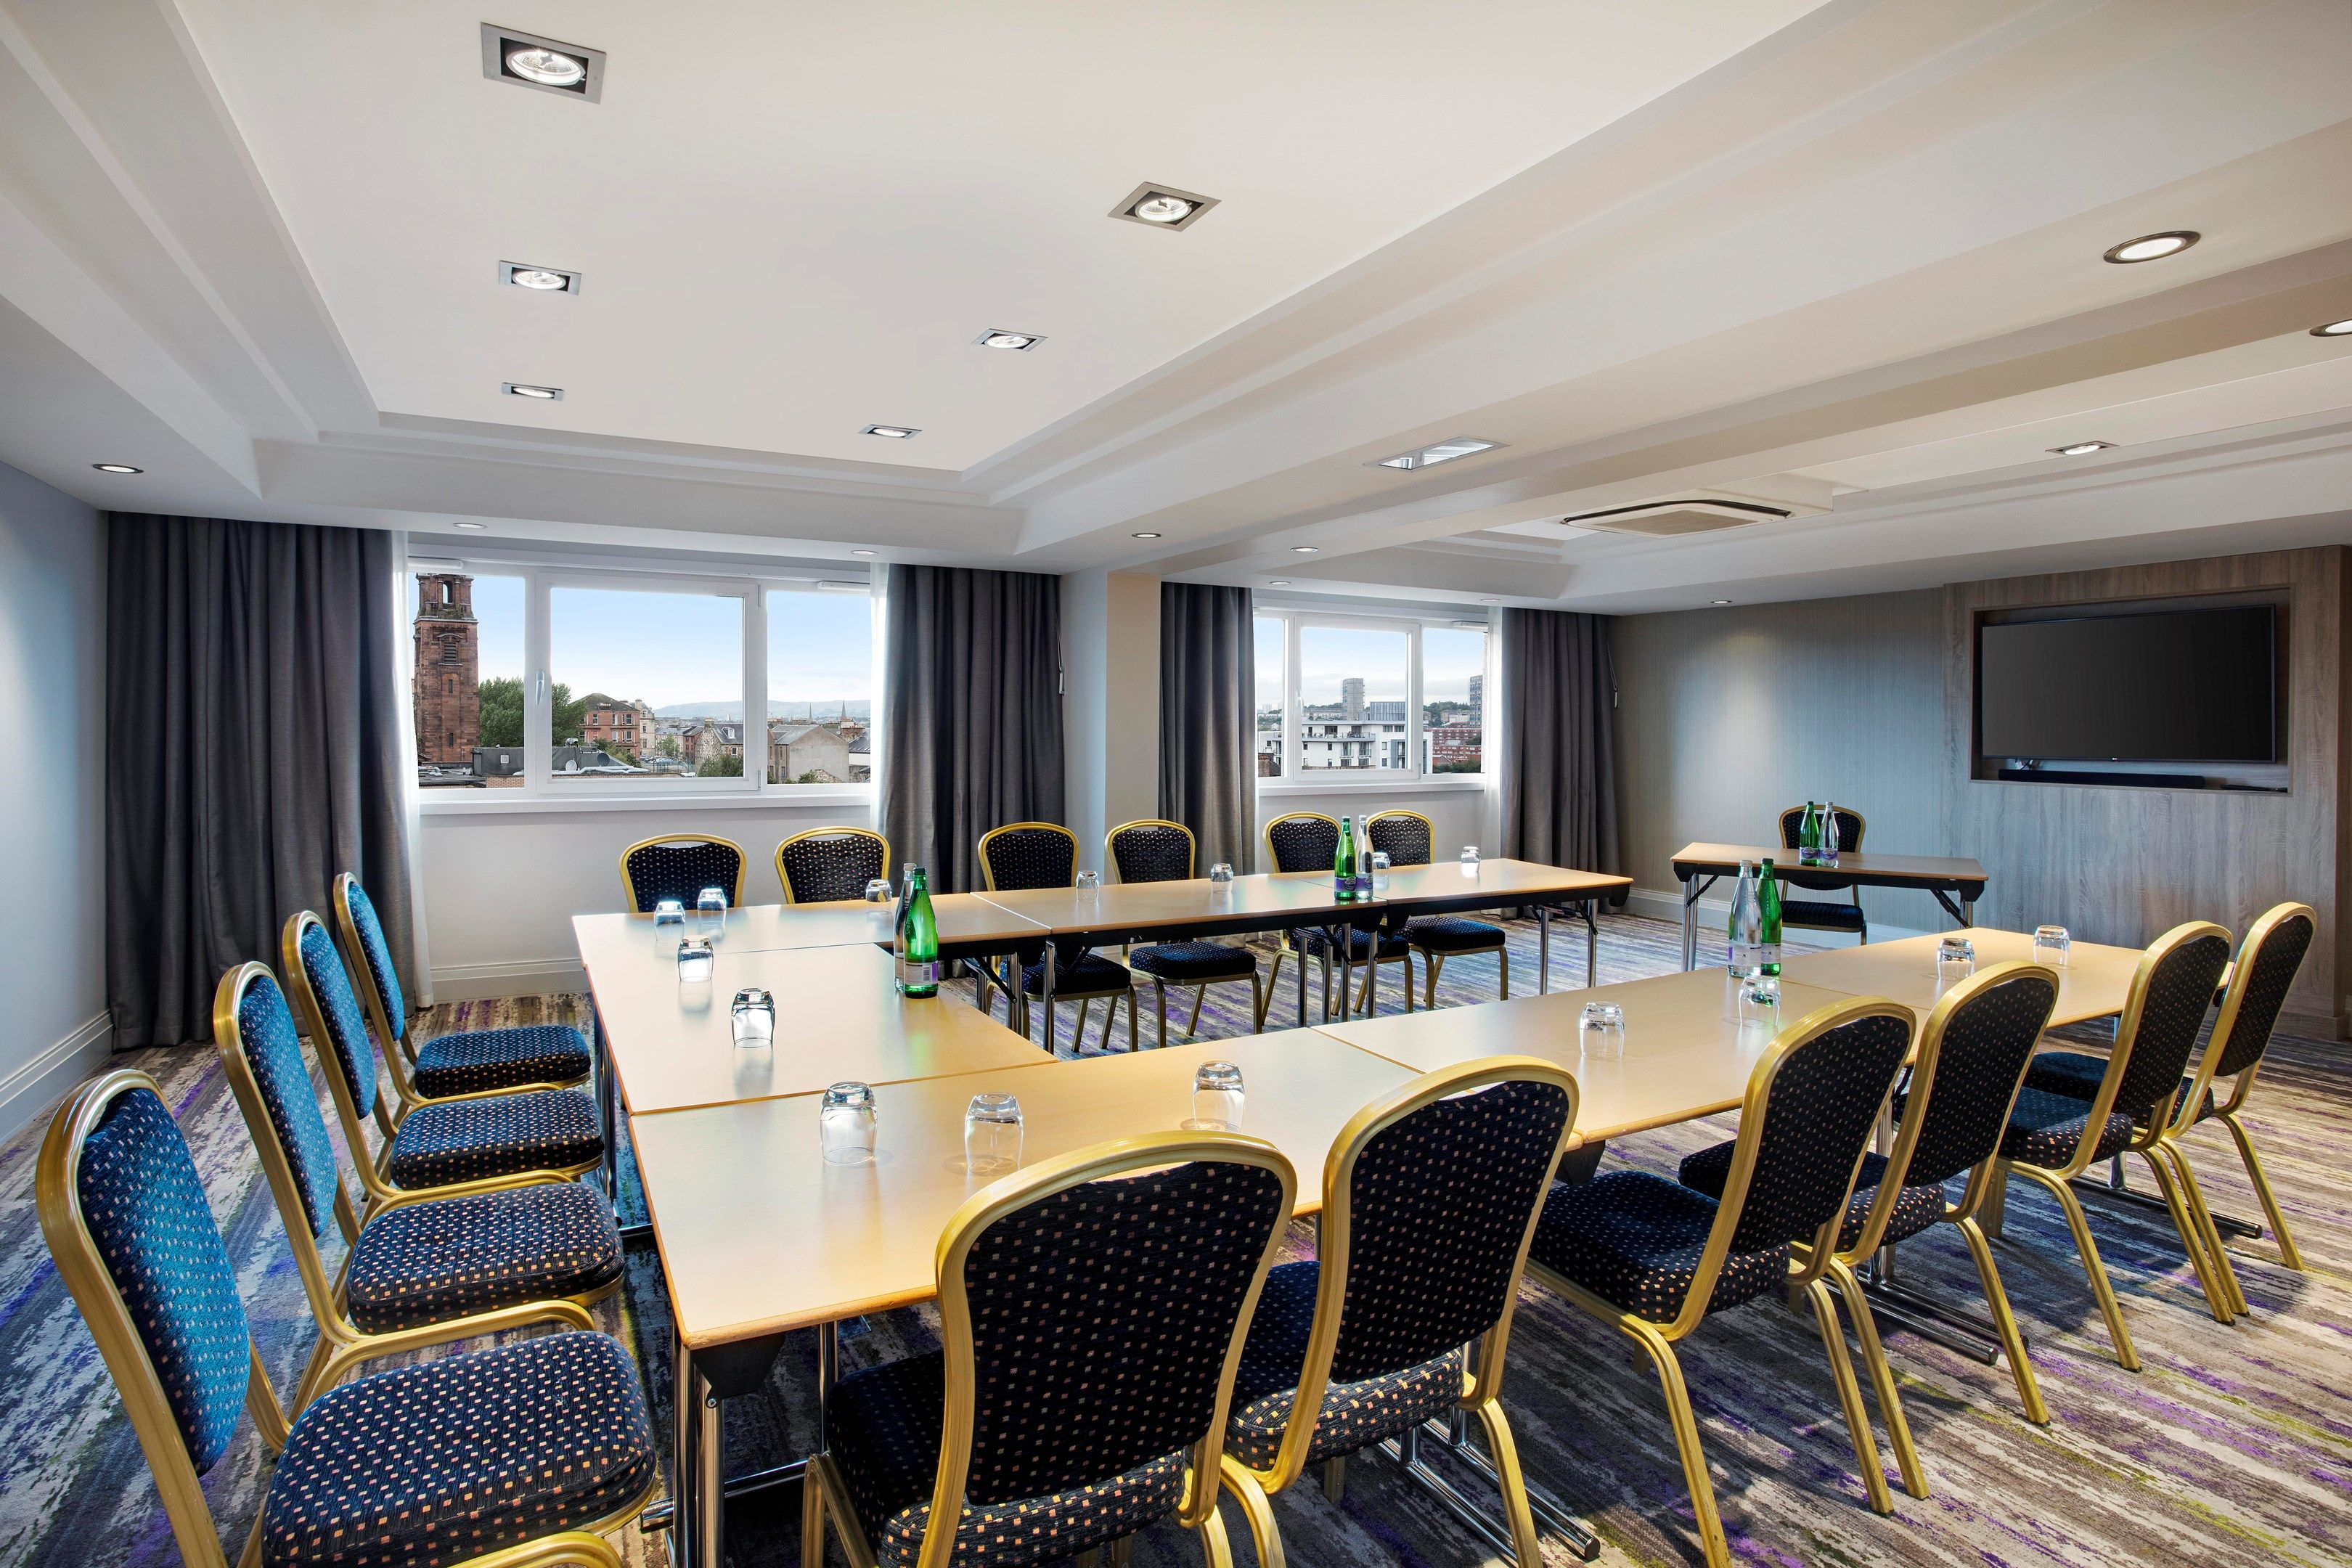 Glasgow Doubletree By Hilton Glasgow Central Maximum Capacity 1500 Glasgow Meeting Planner Conference